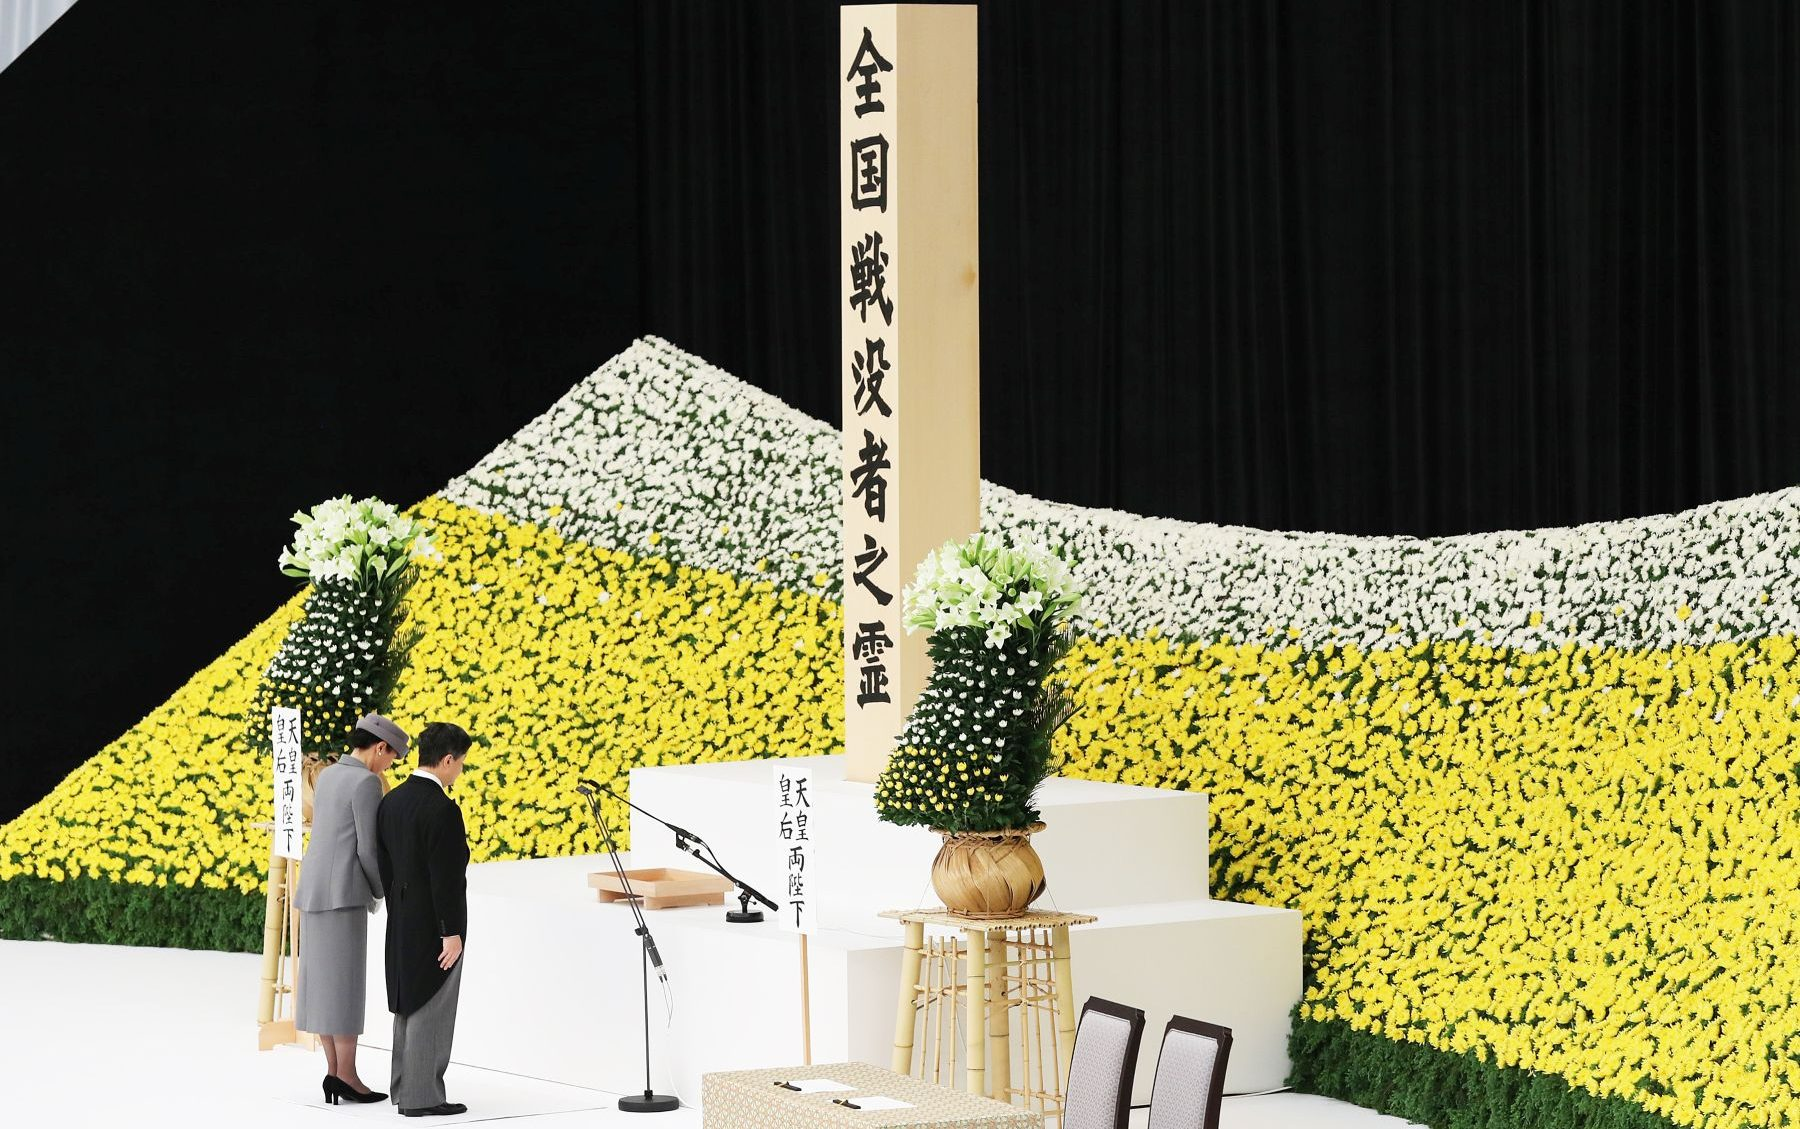 Japan Reiwa Emperor at the Memorial Ceremony for the War Dead